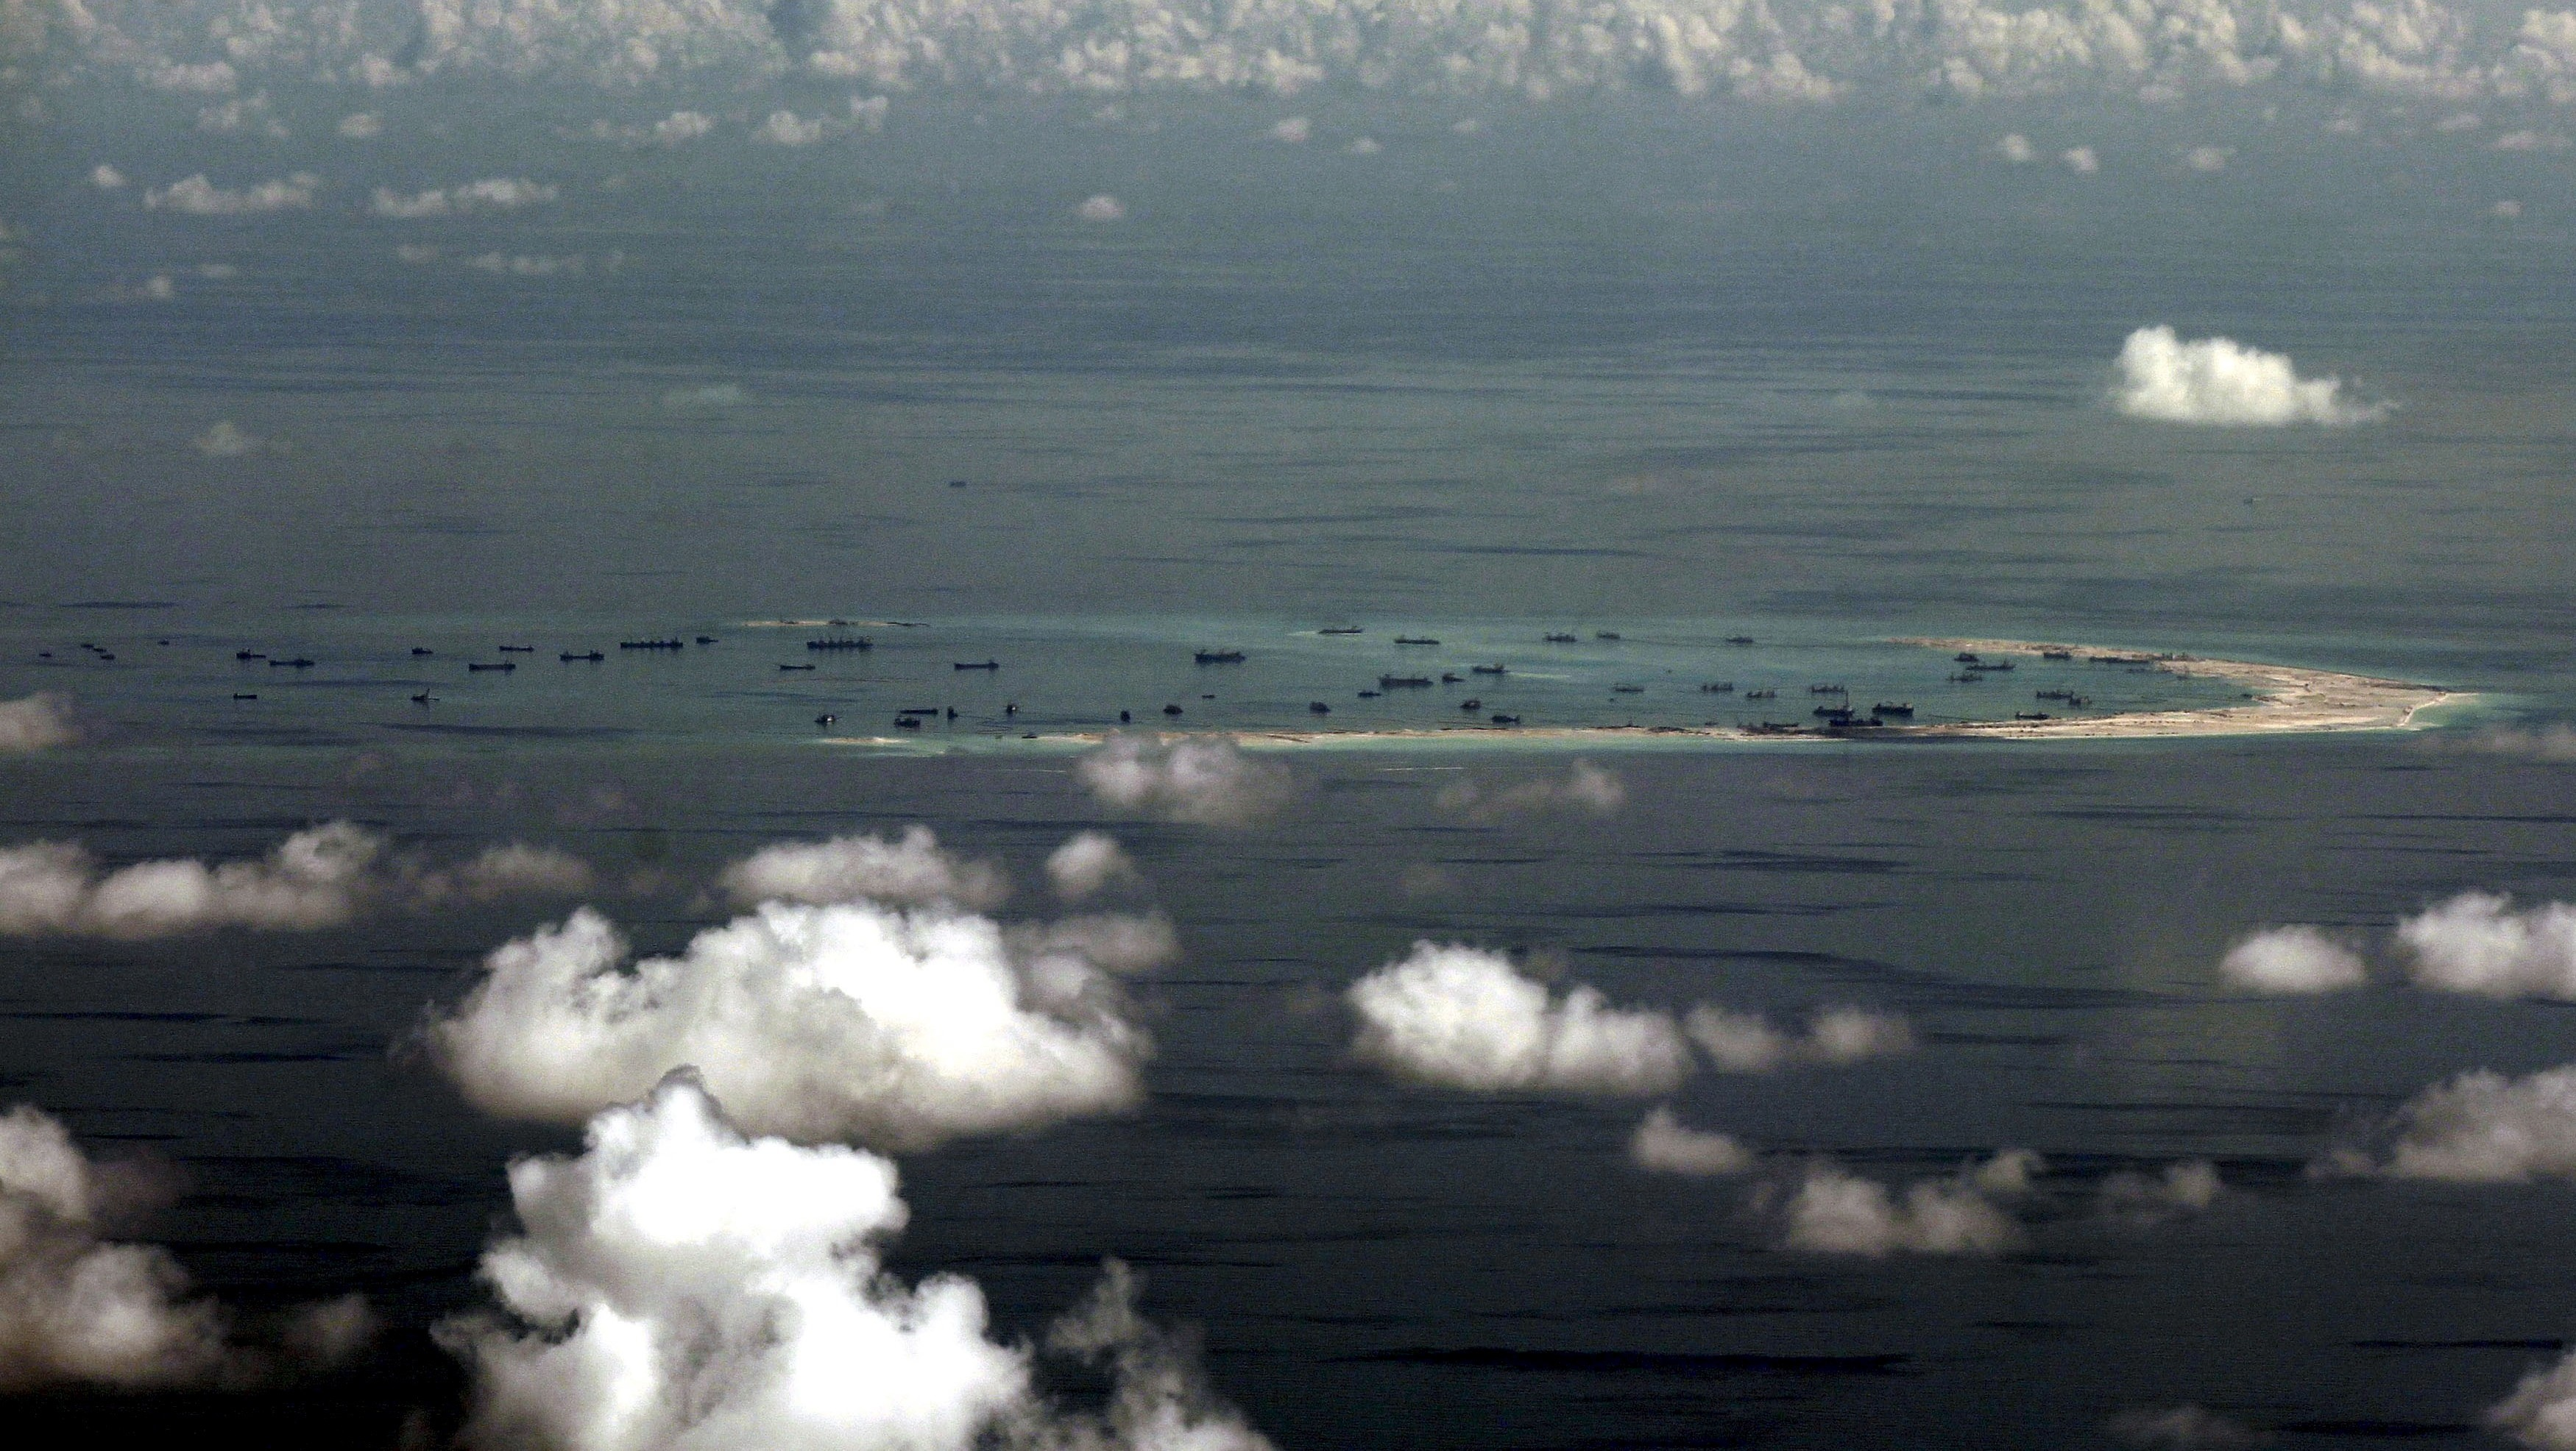 China Is Staking Stronger Claims in the South China Sea on Eve of Kerry's Beijing Visit